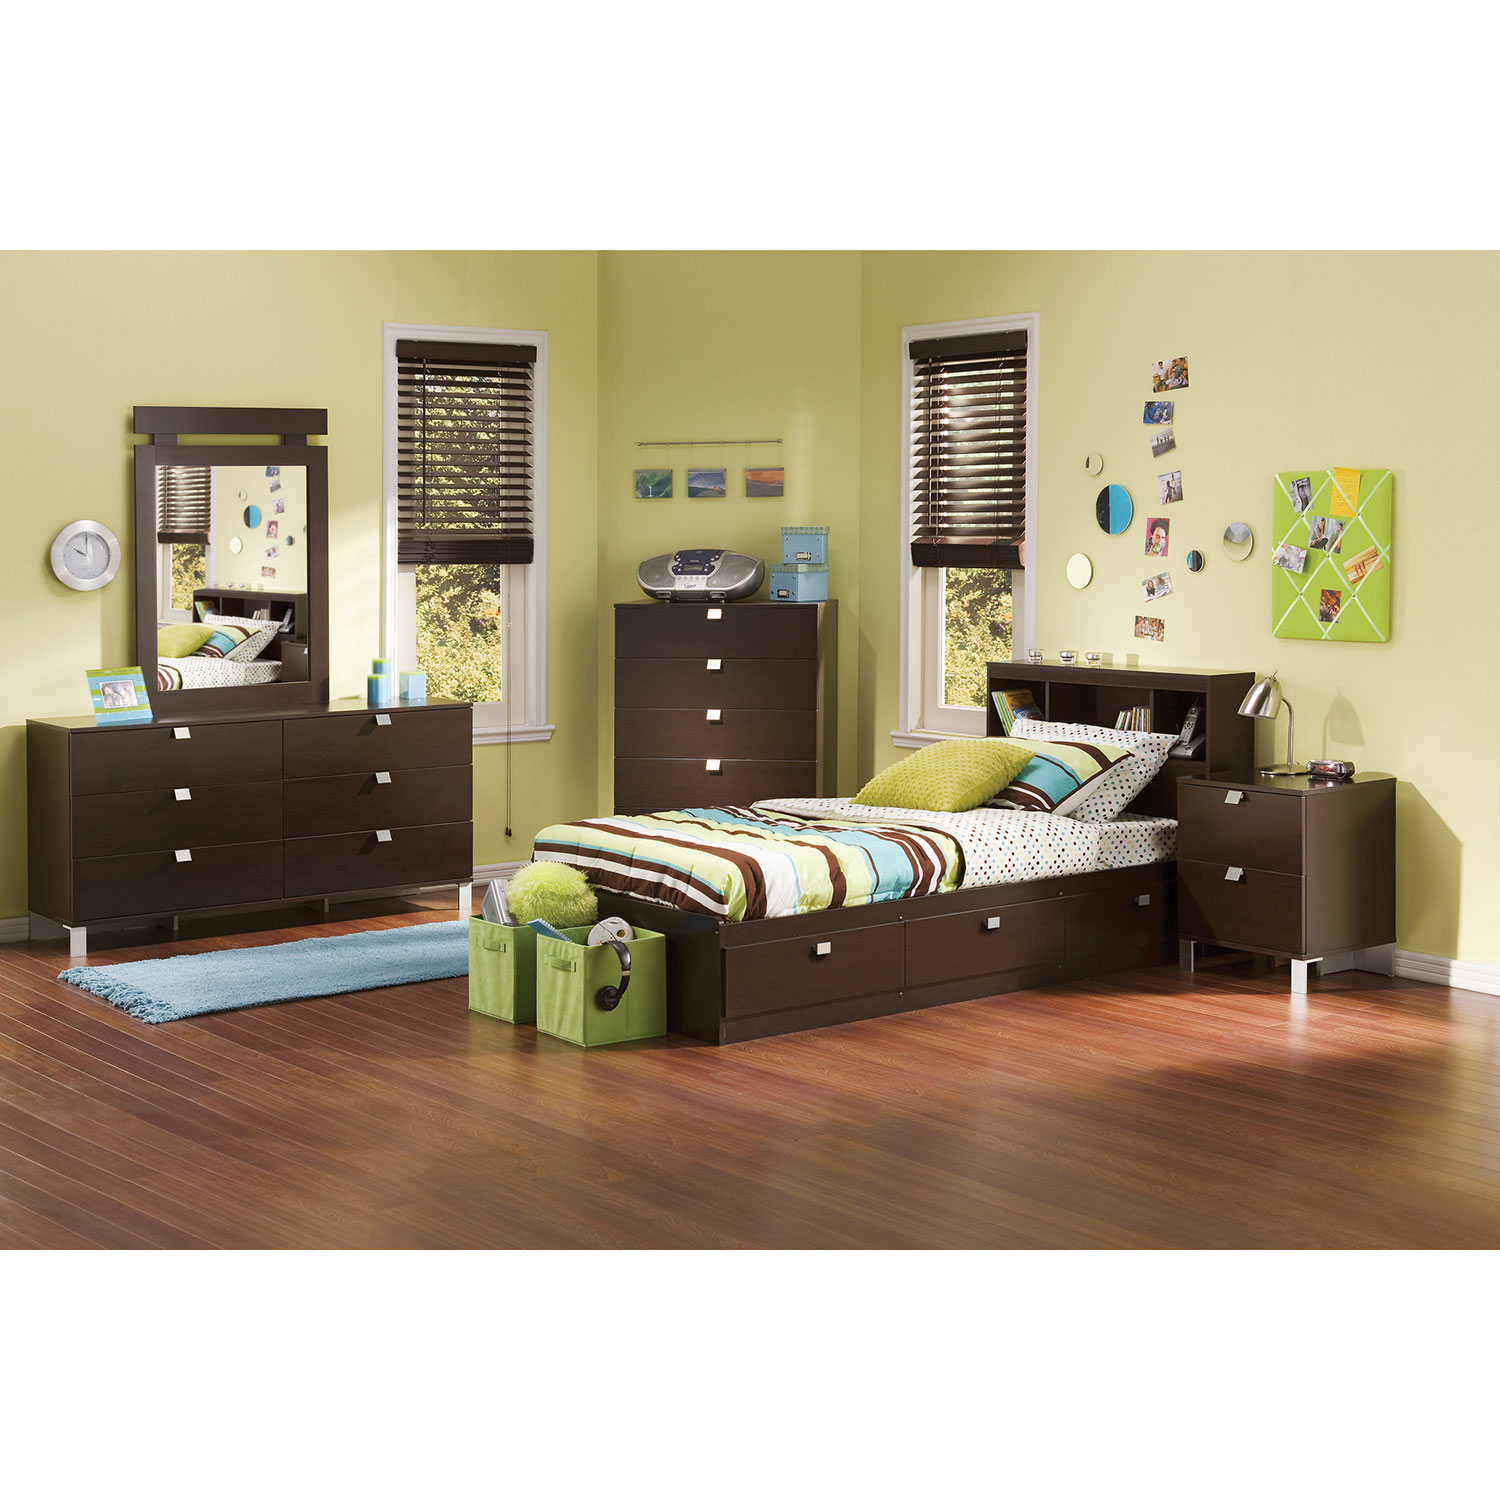 Cakao Contemporary Kids Bed